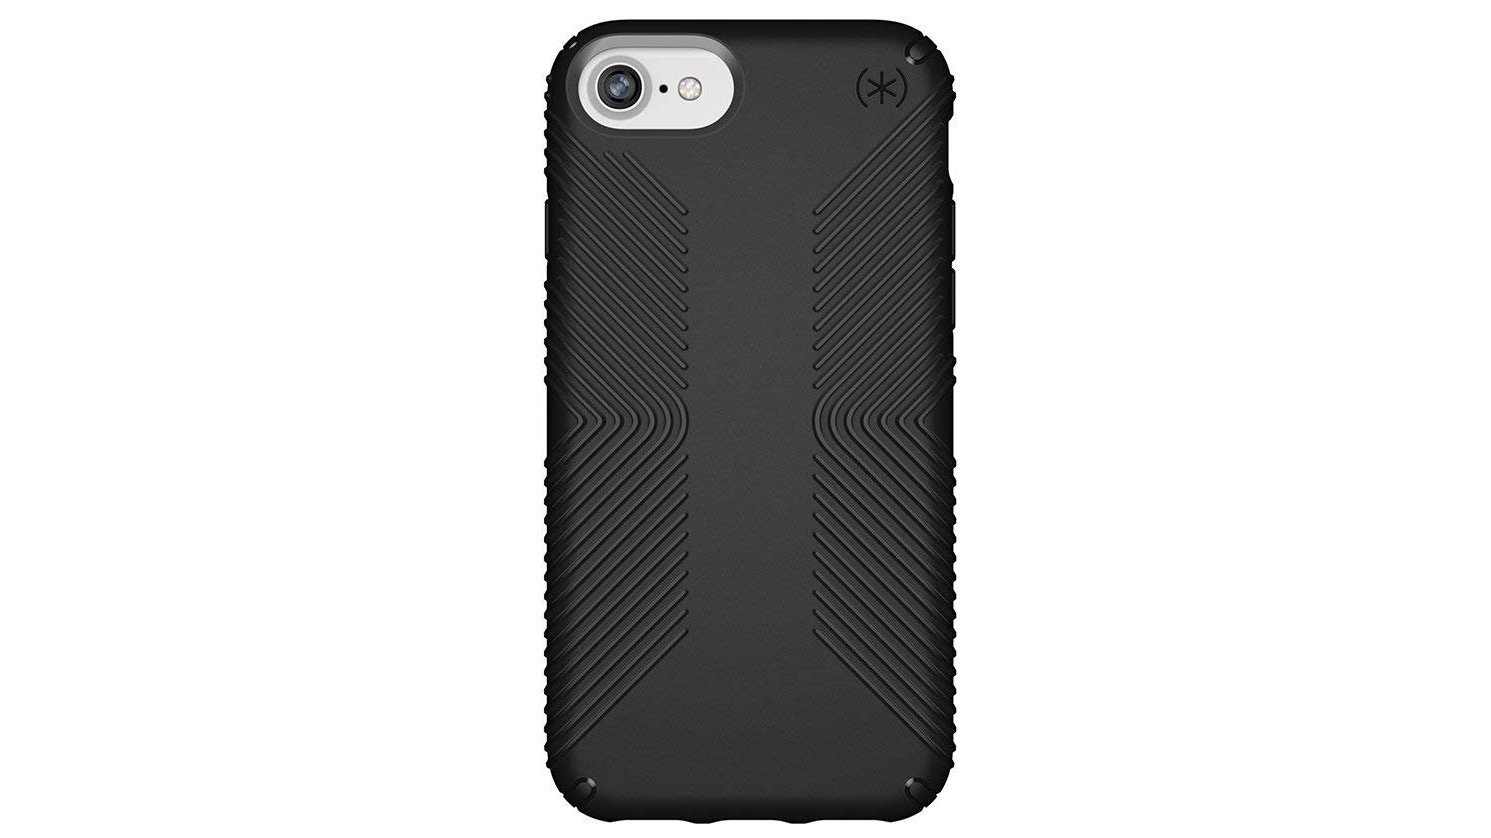 the latest 200c2 38b04 Best iPhone 8 case: Keep your phone protected with these stylish ...